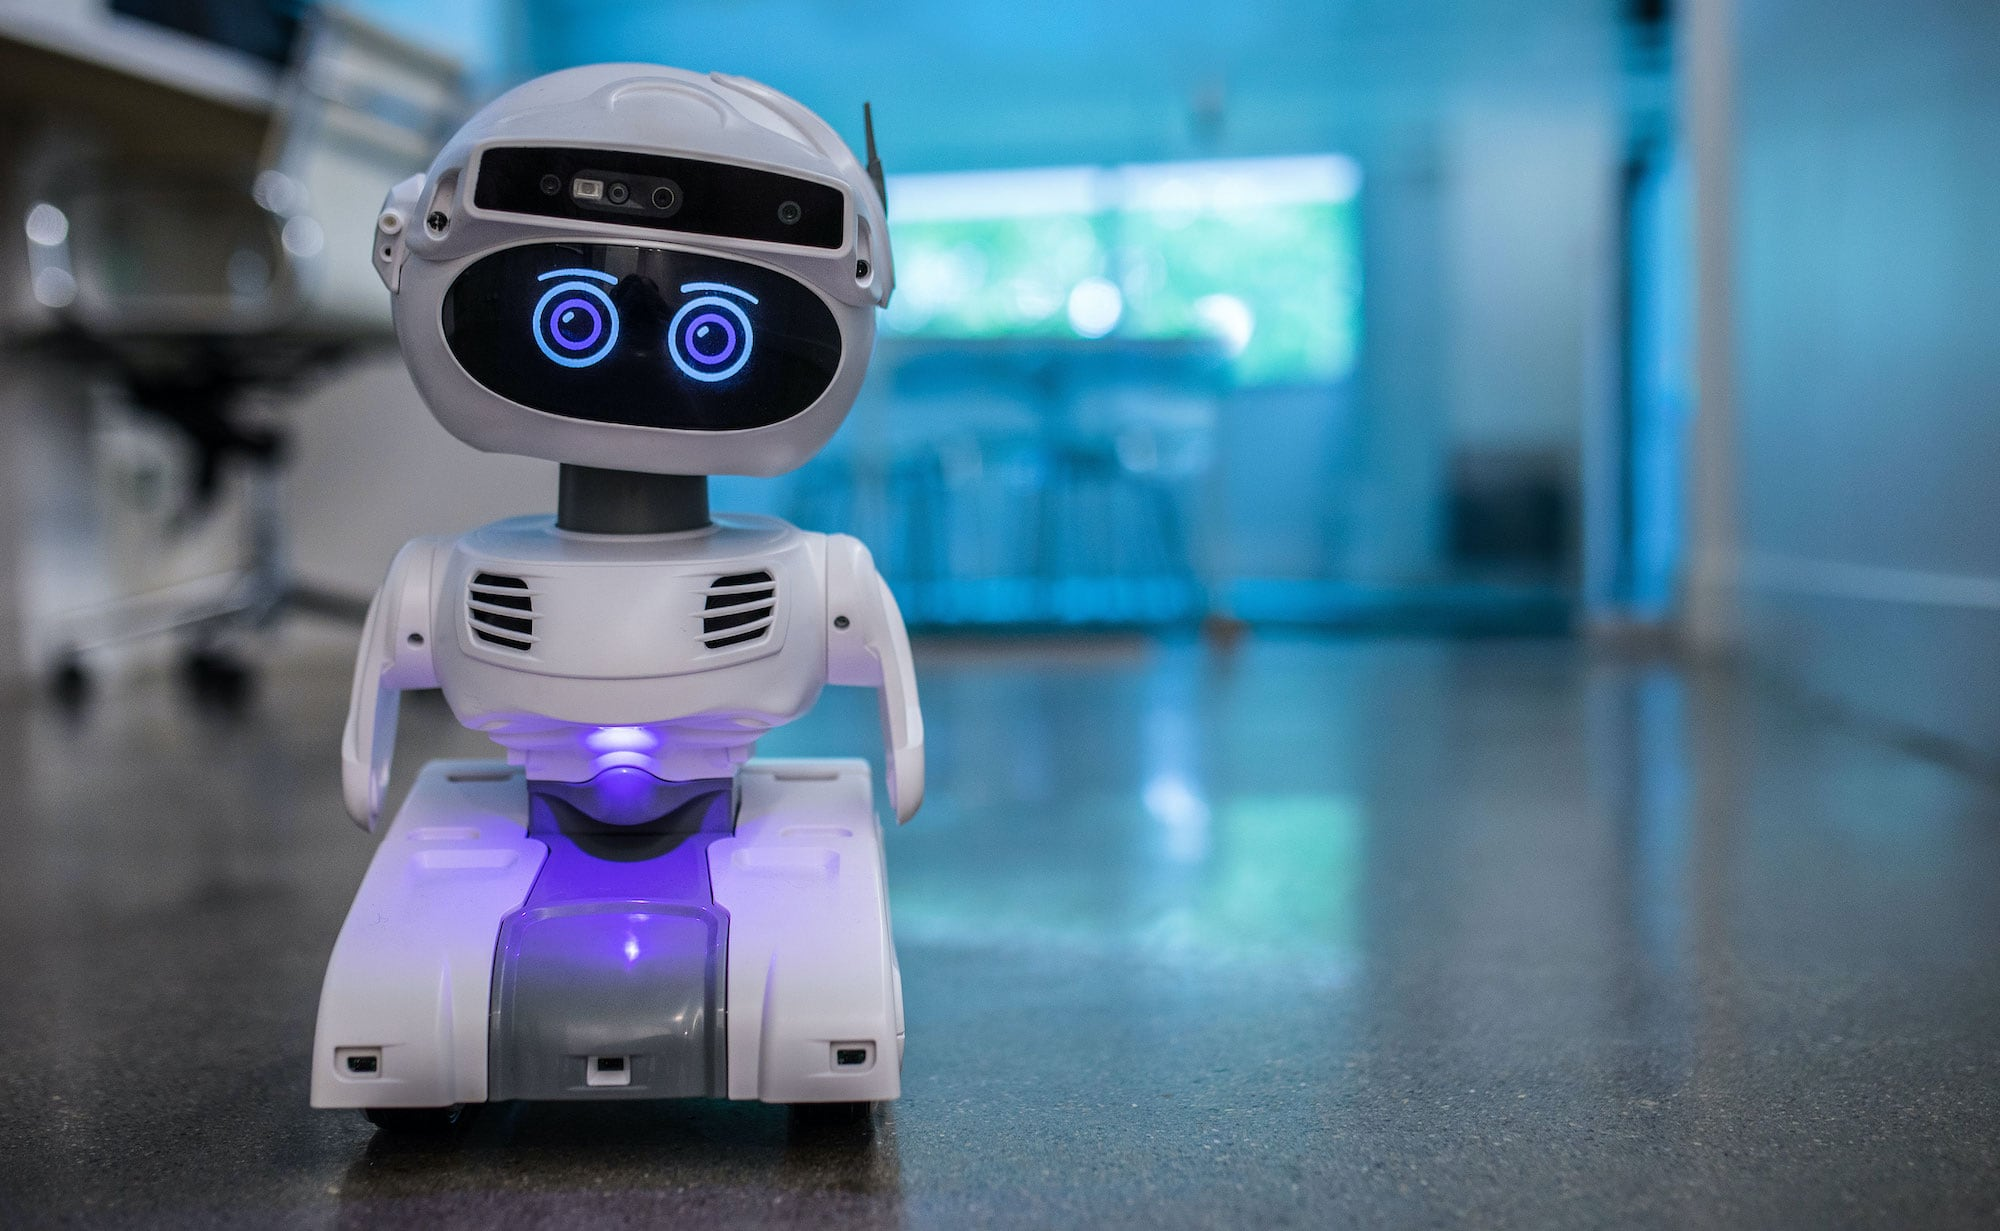 The personal robot platform is a small, cute robot looking at the camera.